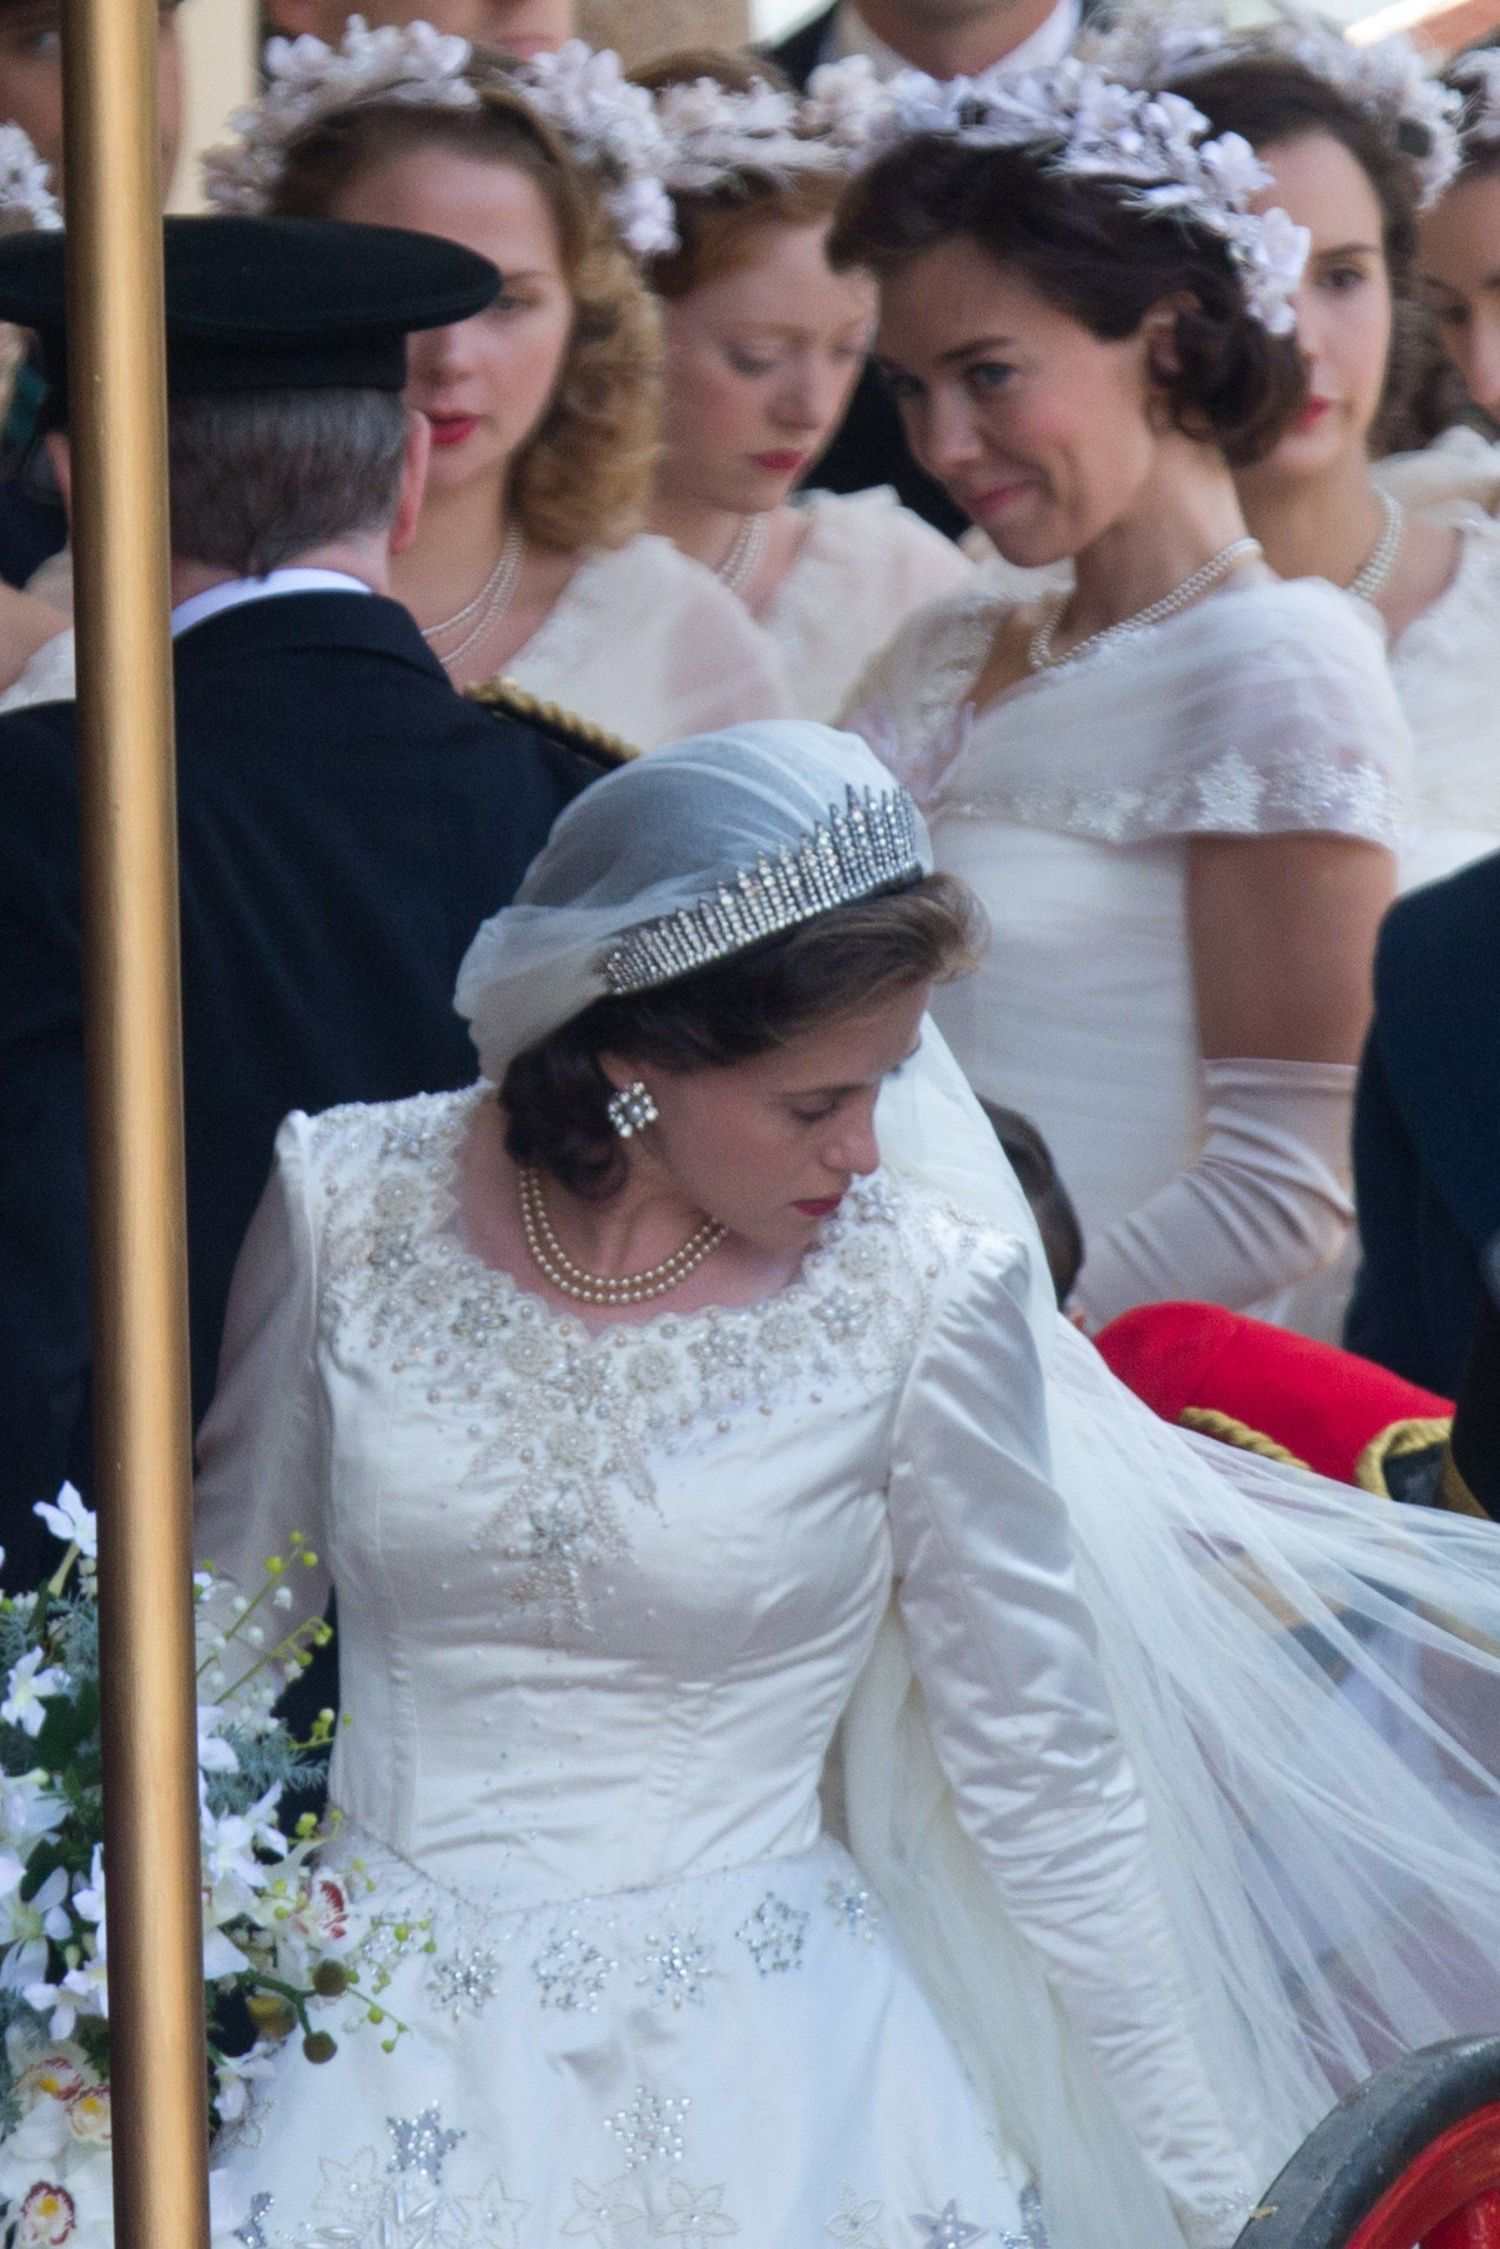 How Queen Elizabeth S Real Life Wedding Compares To The Made For Tv Version The Crown Elizabeth Crown Netflix The Crown Series